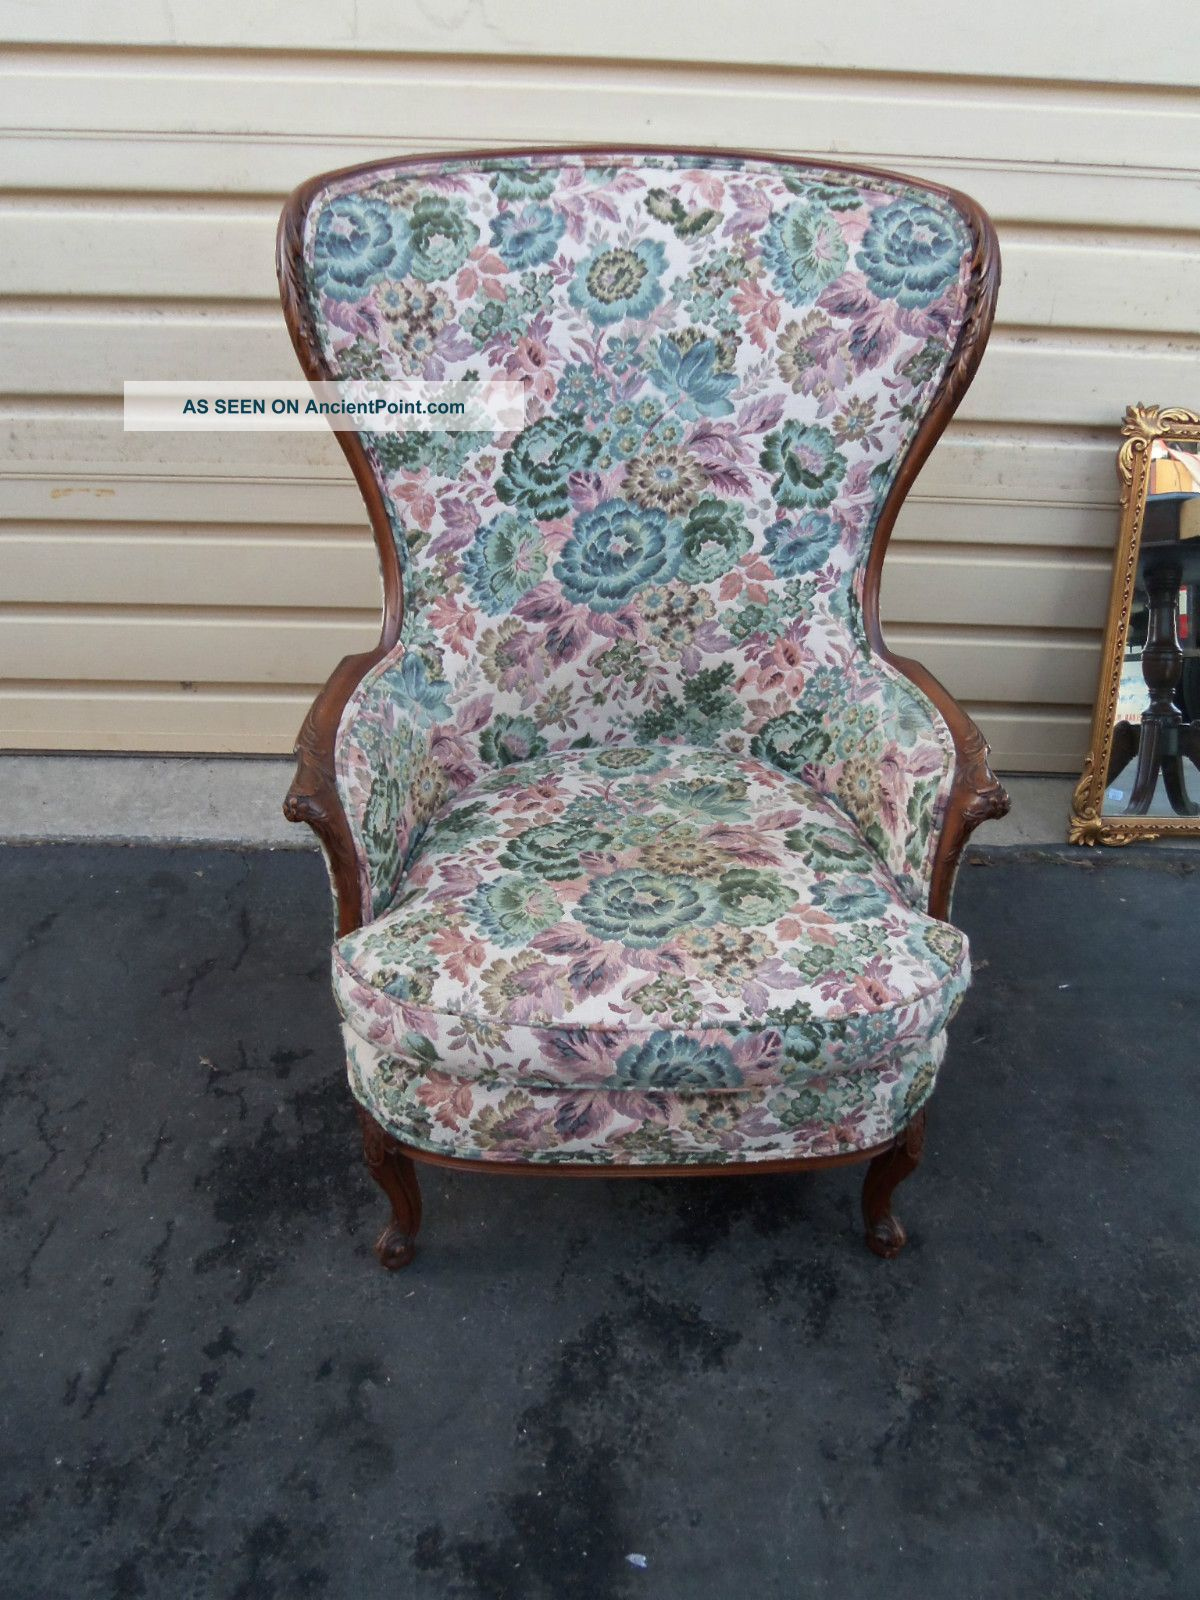 49813 Antique French Fireside Carved Chair 1900-1950 photo